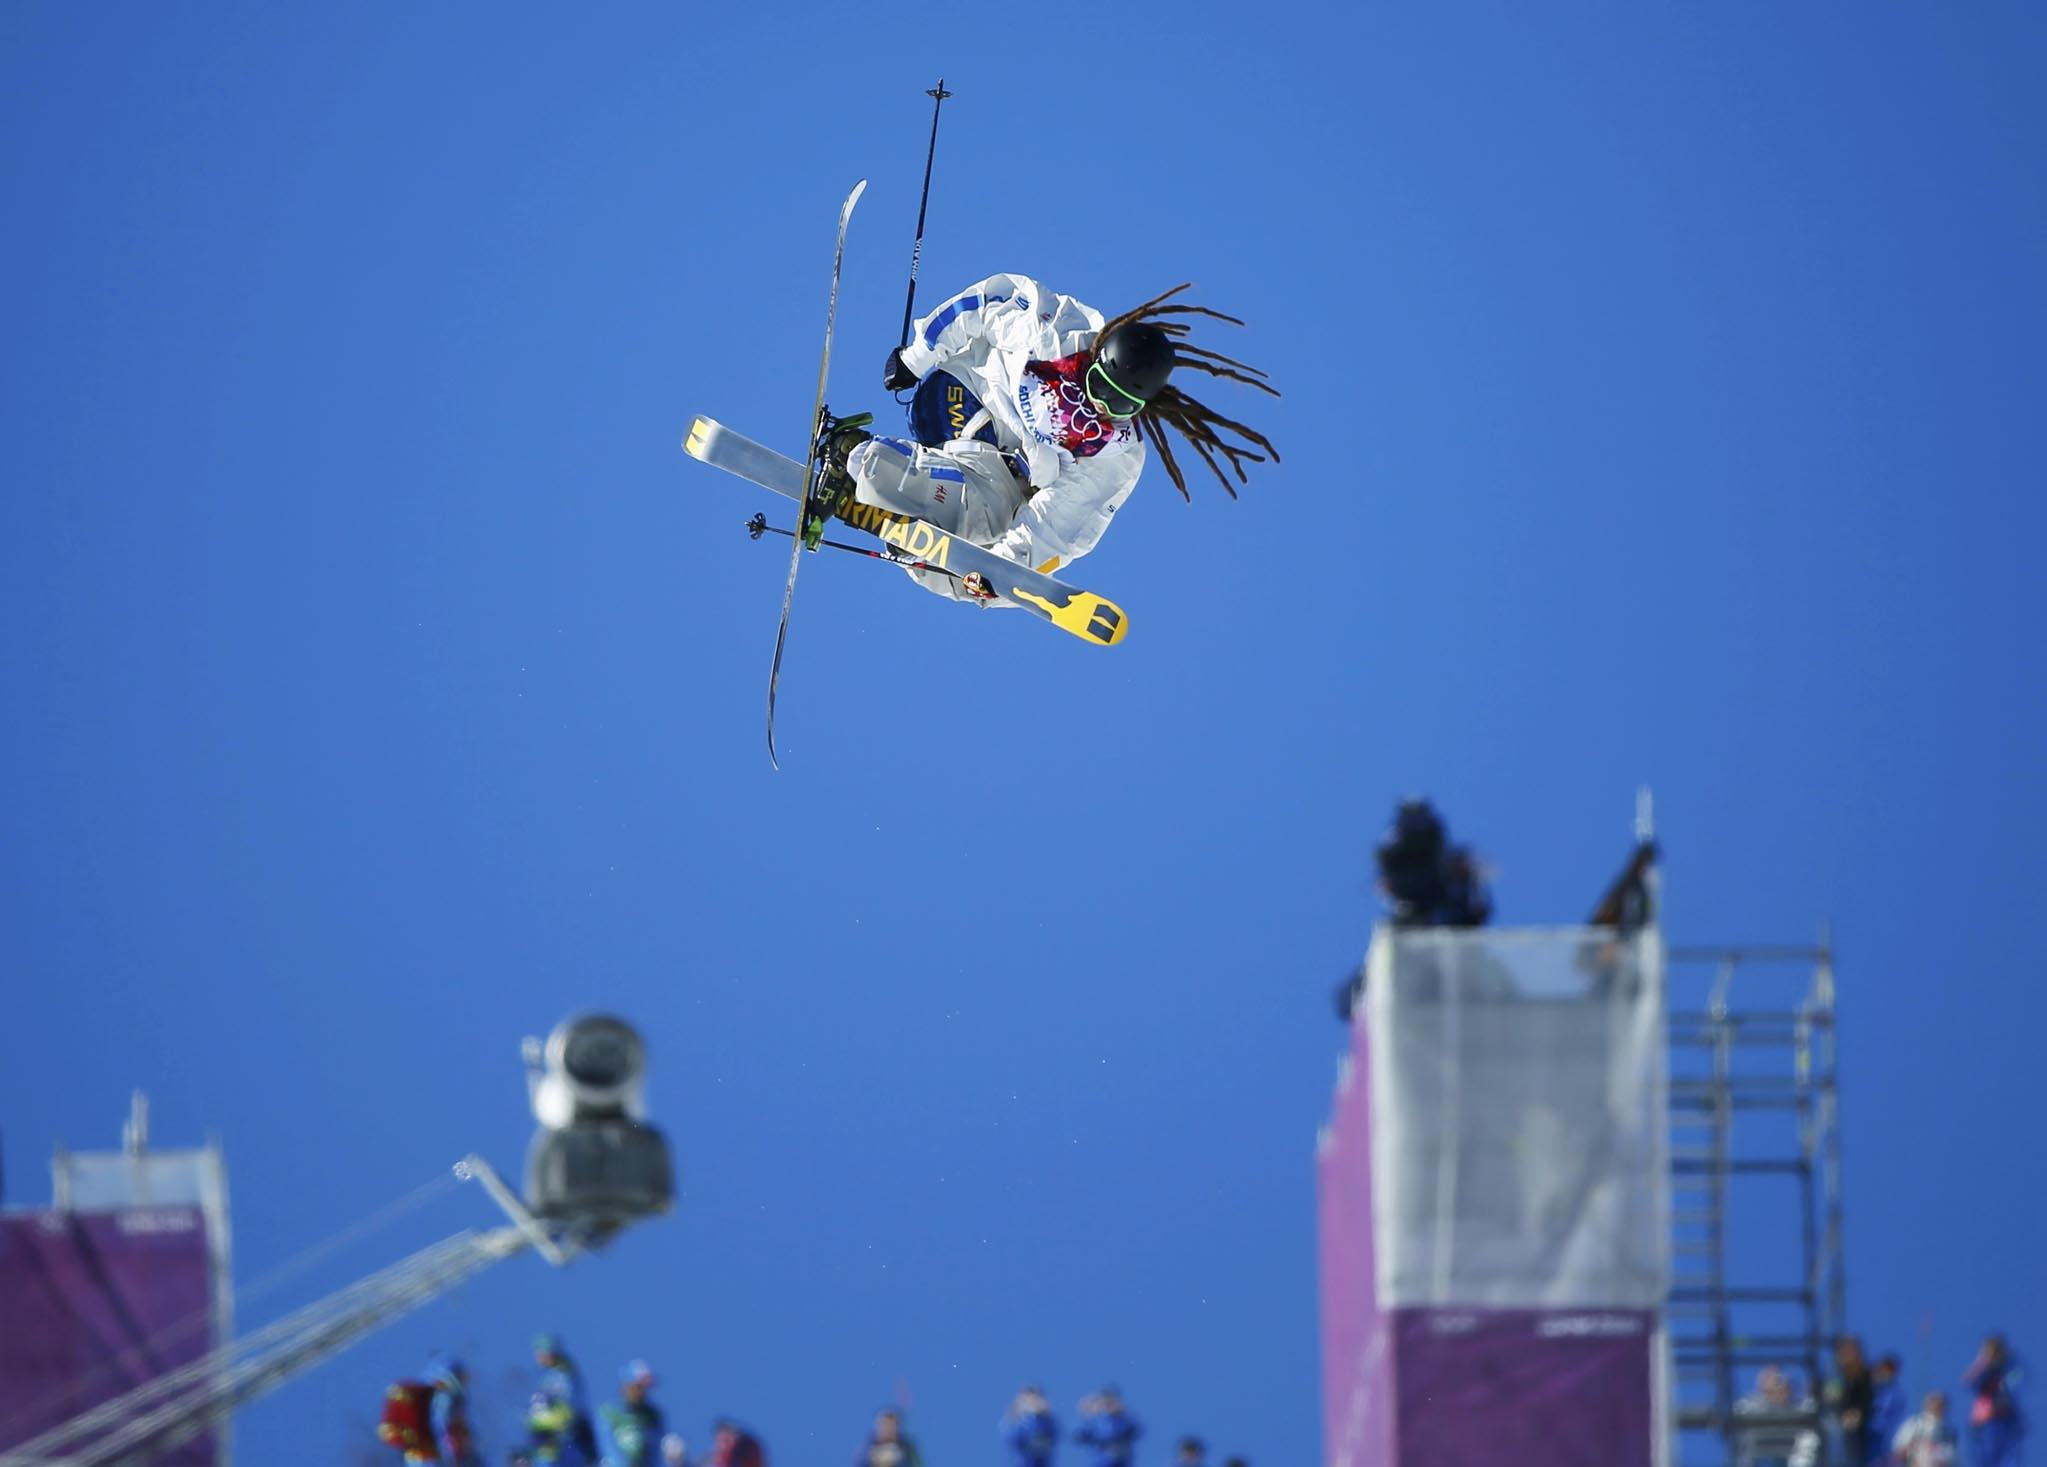 Sweden's Henrik Harlaut performs jump during men's freestyle skiing slopestyle finals at 2014 Sochi Winter Olympic Games in Rosa Khutor